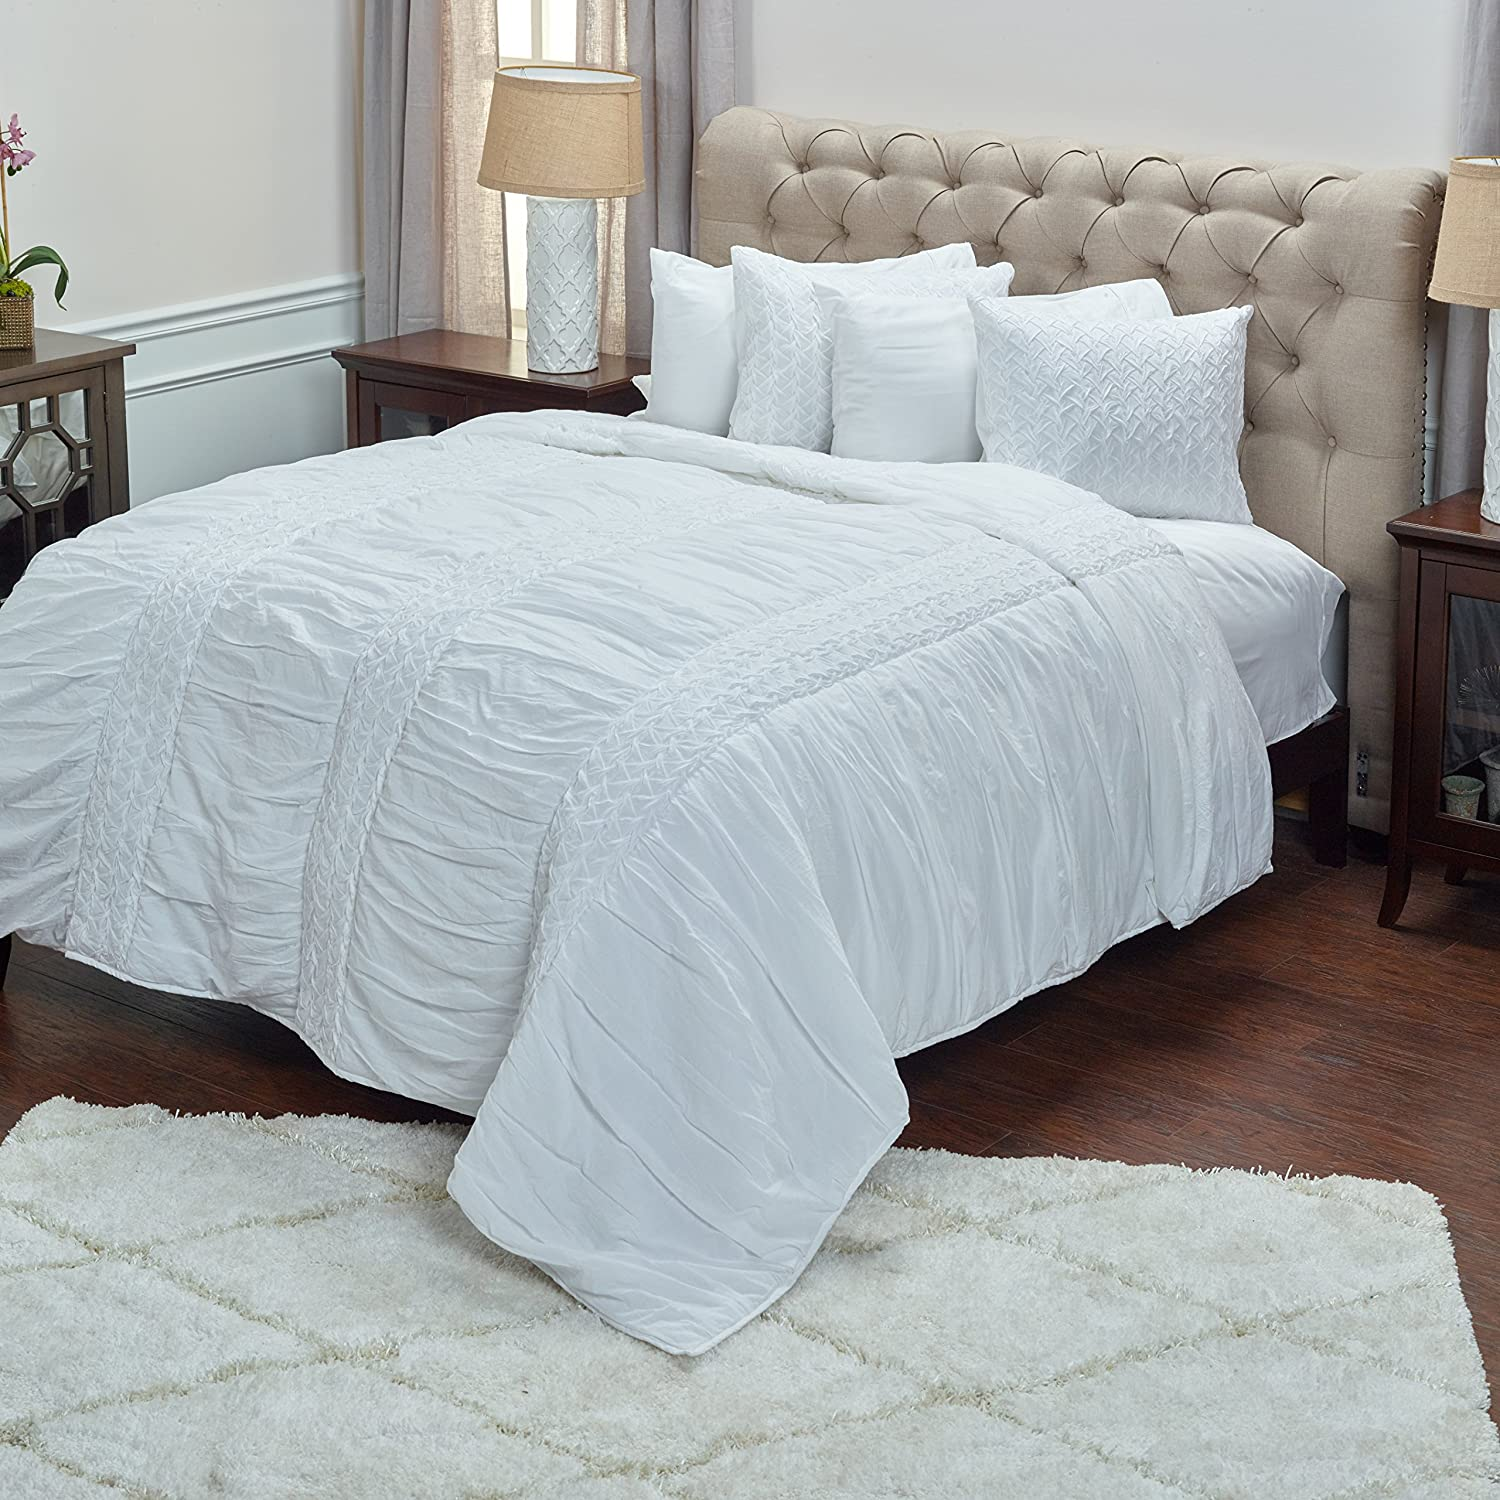 Rizzy Home Carly Quilt King White QLTBT405600931692